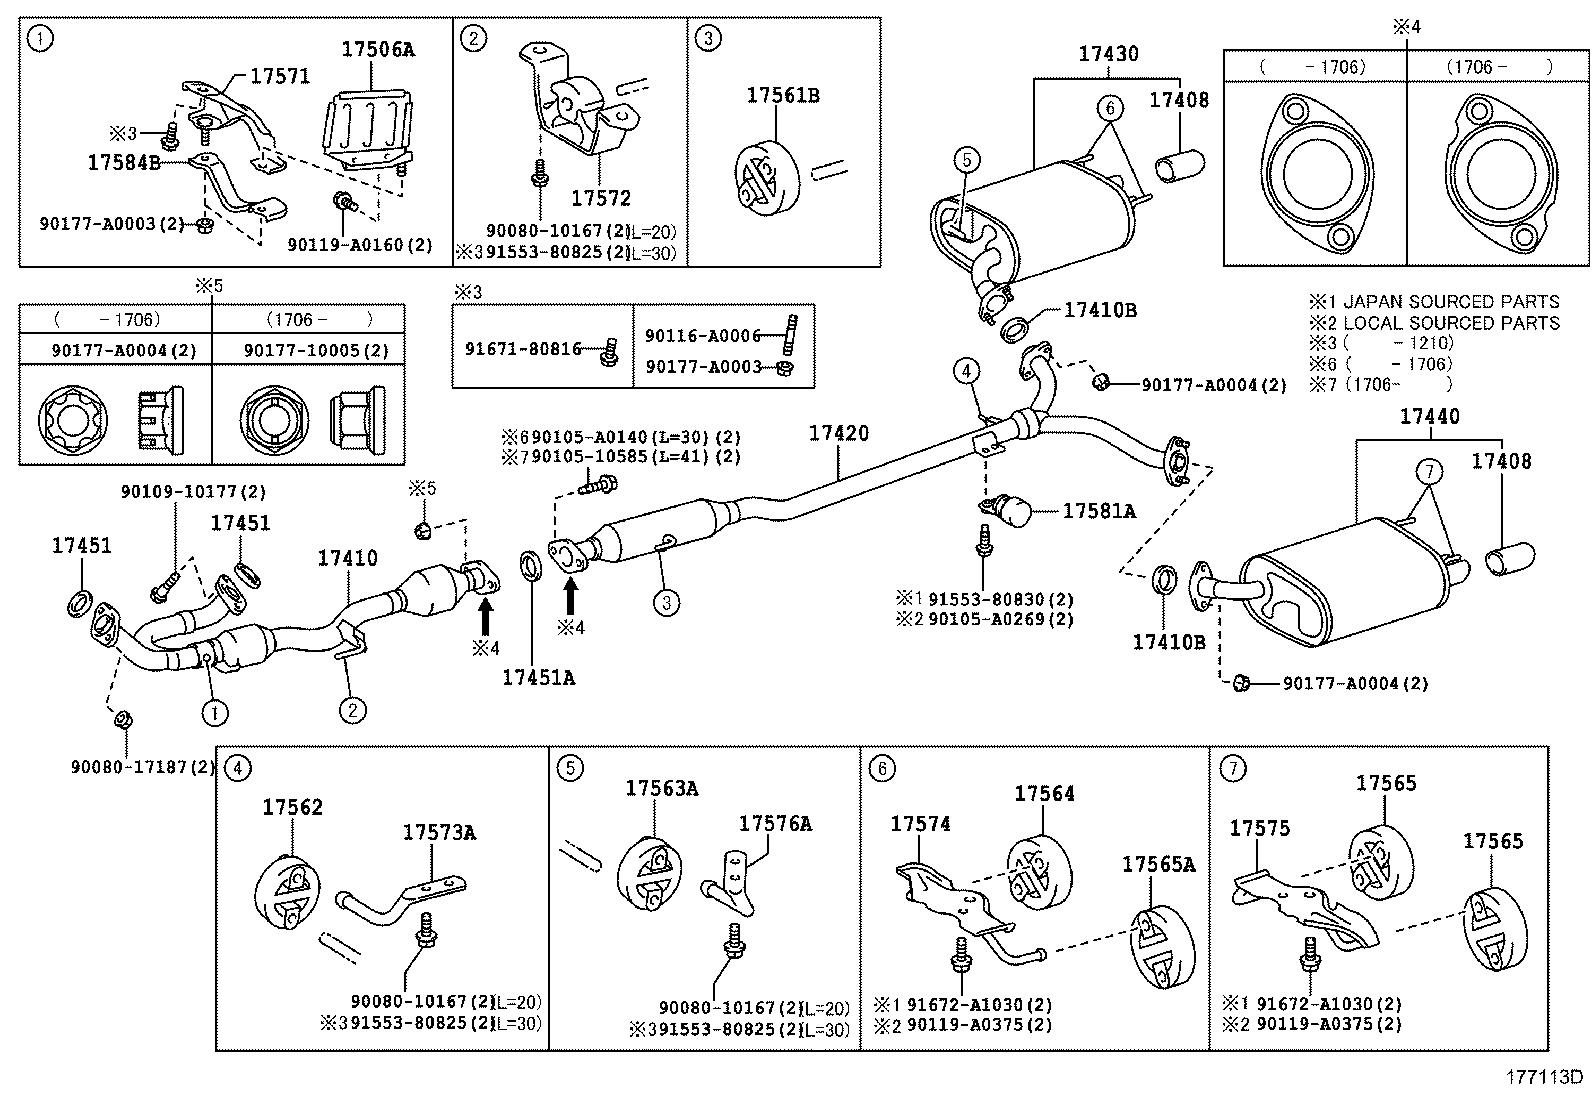 Toyota Camry Exhaust System Hanger Bracket Exhaust Pipe